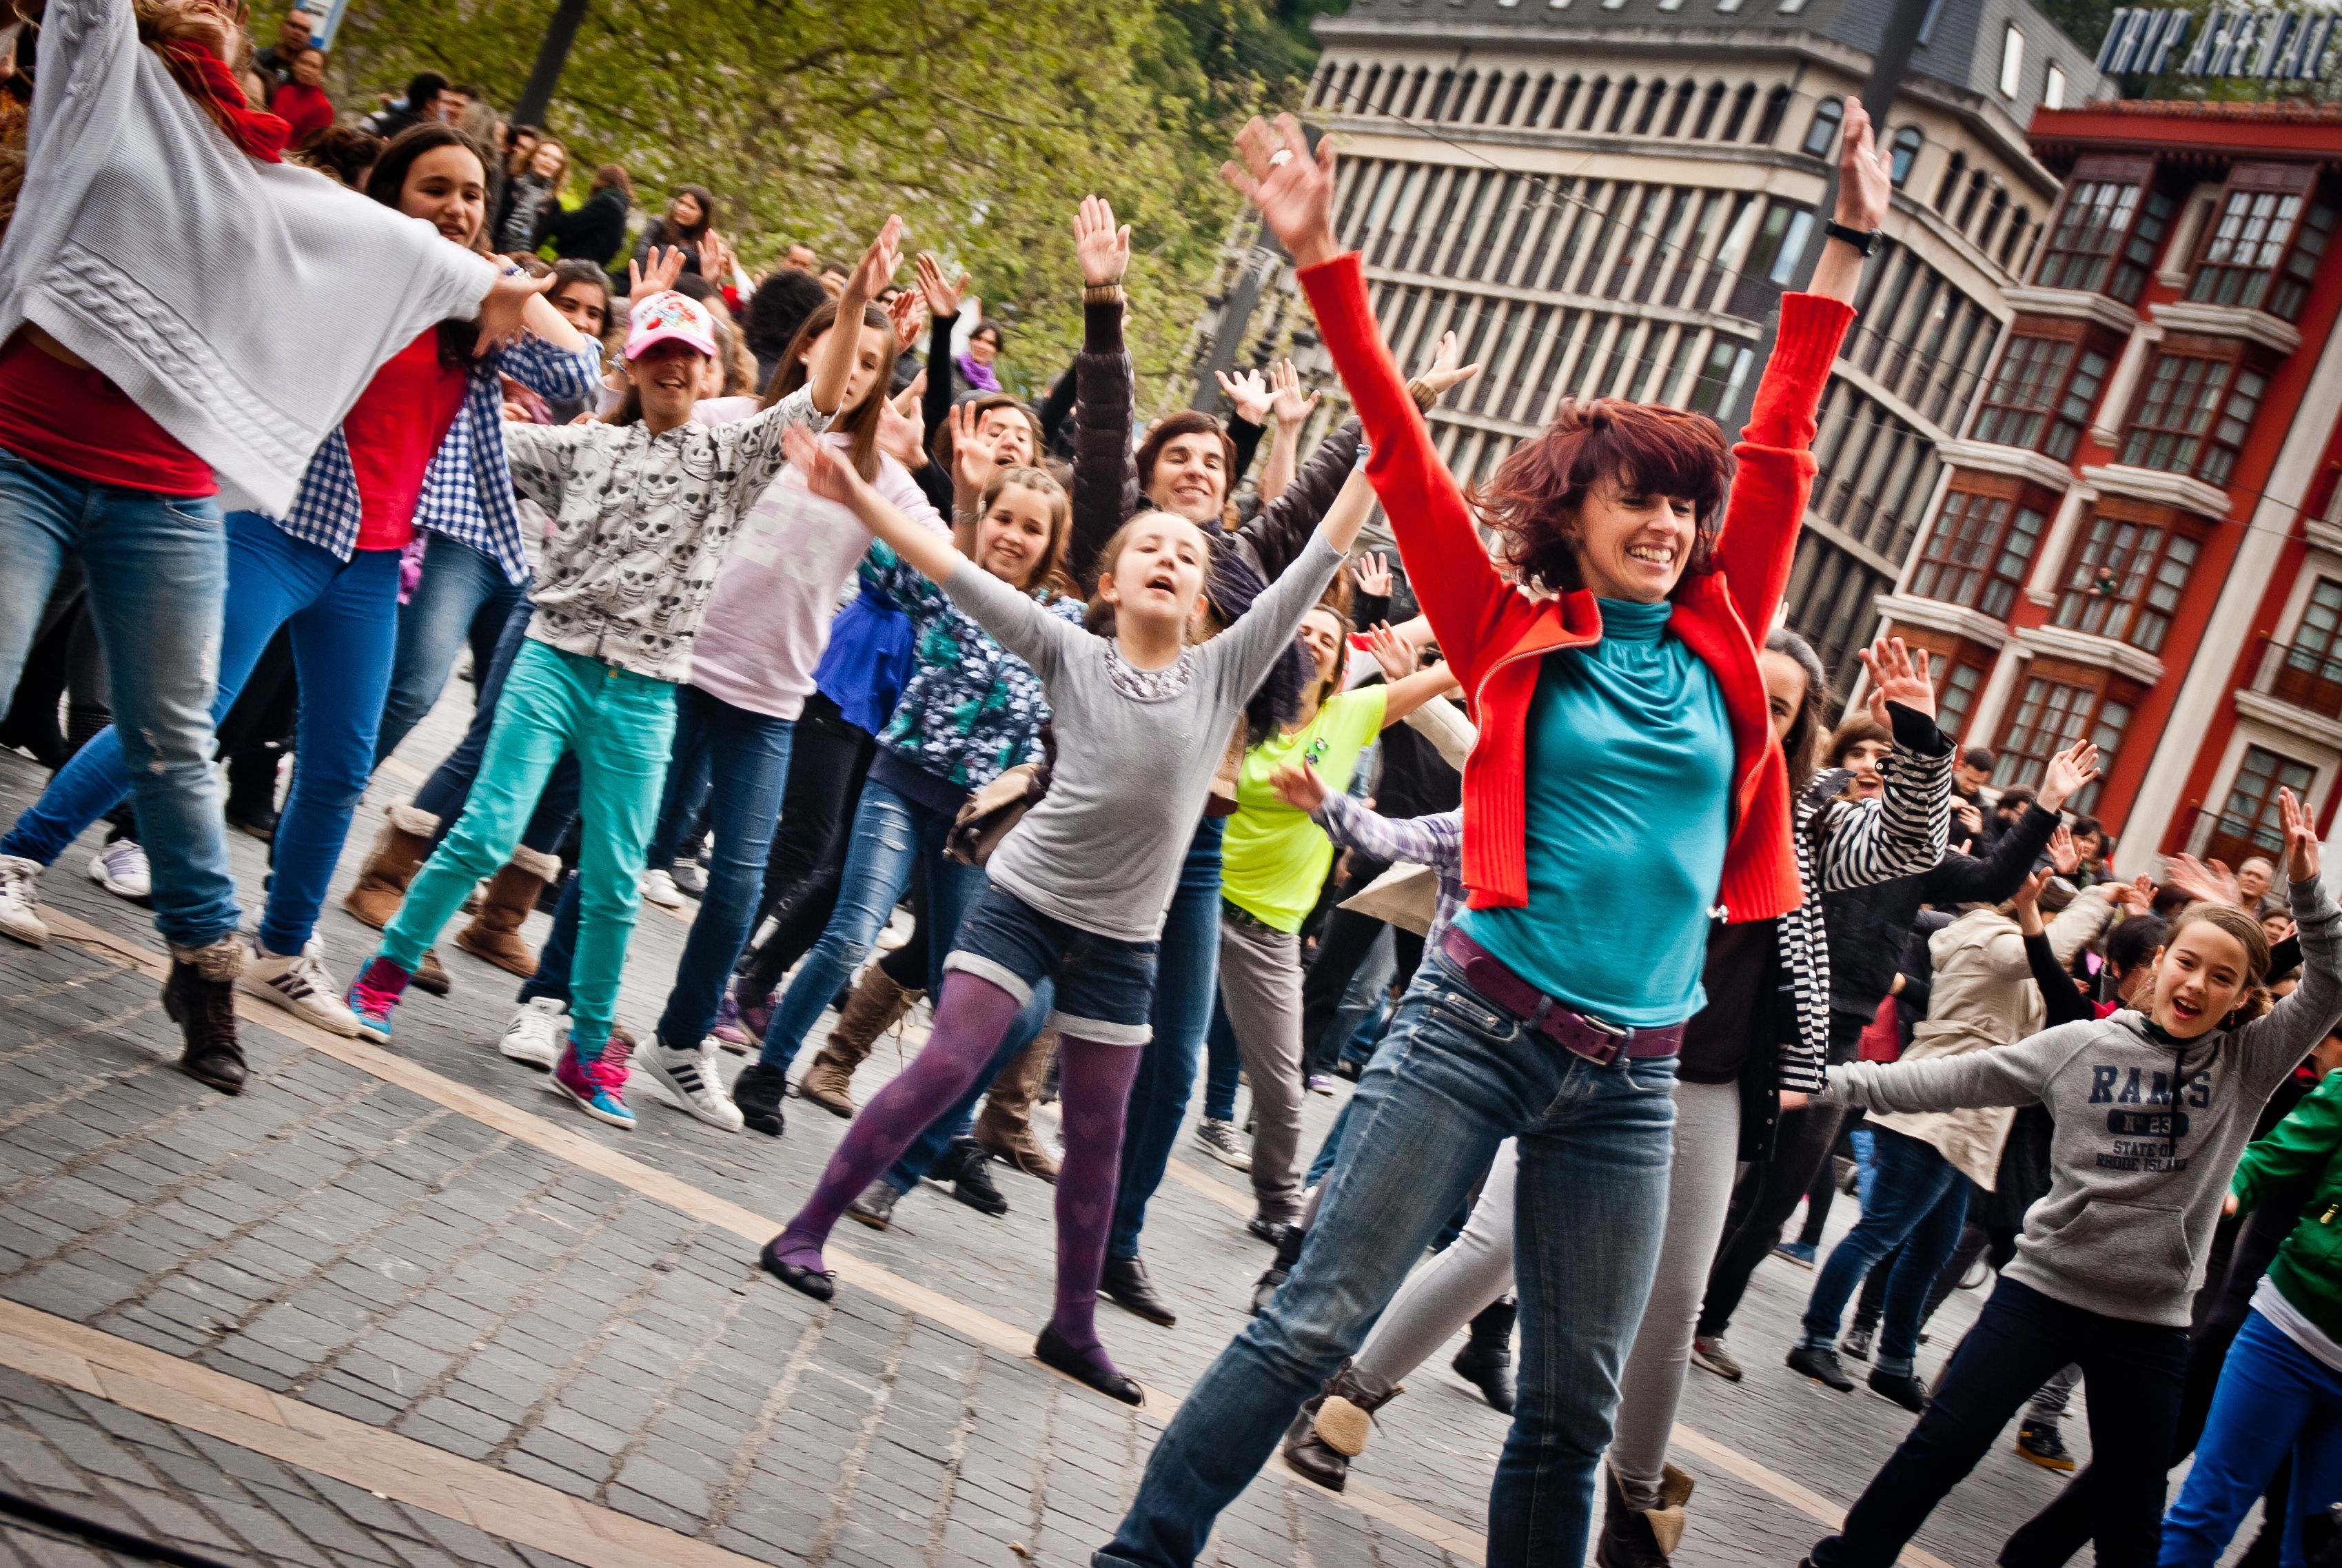 Flash Mobs should be banned. Pointless Narcissism.